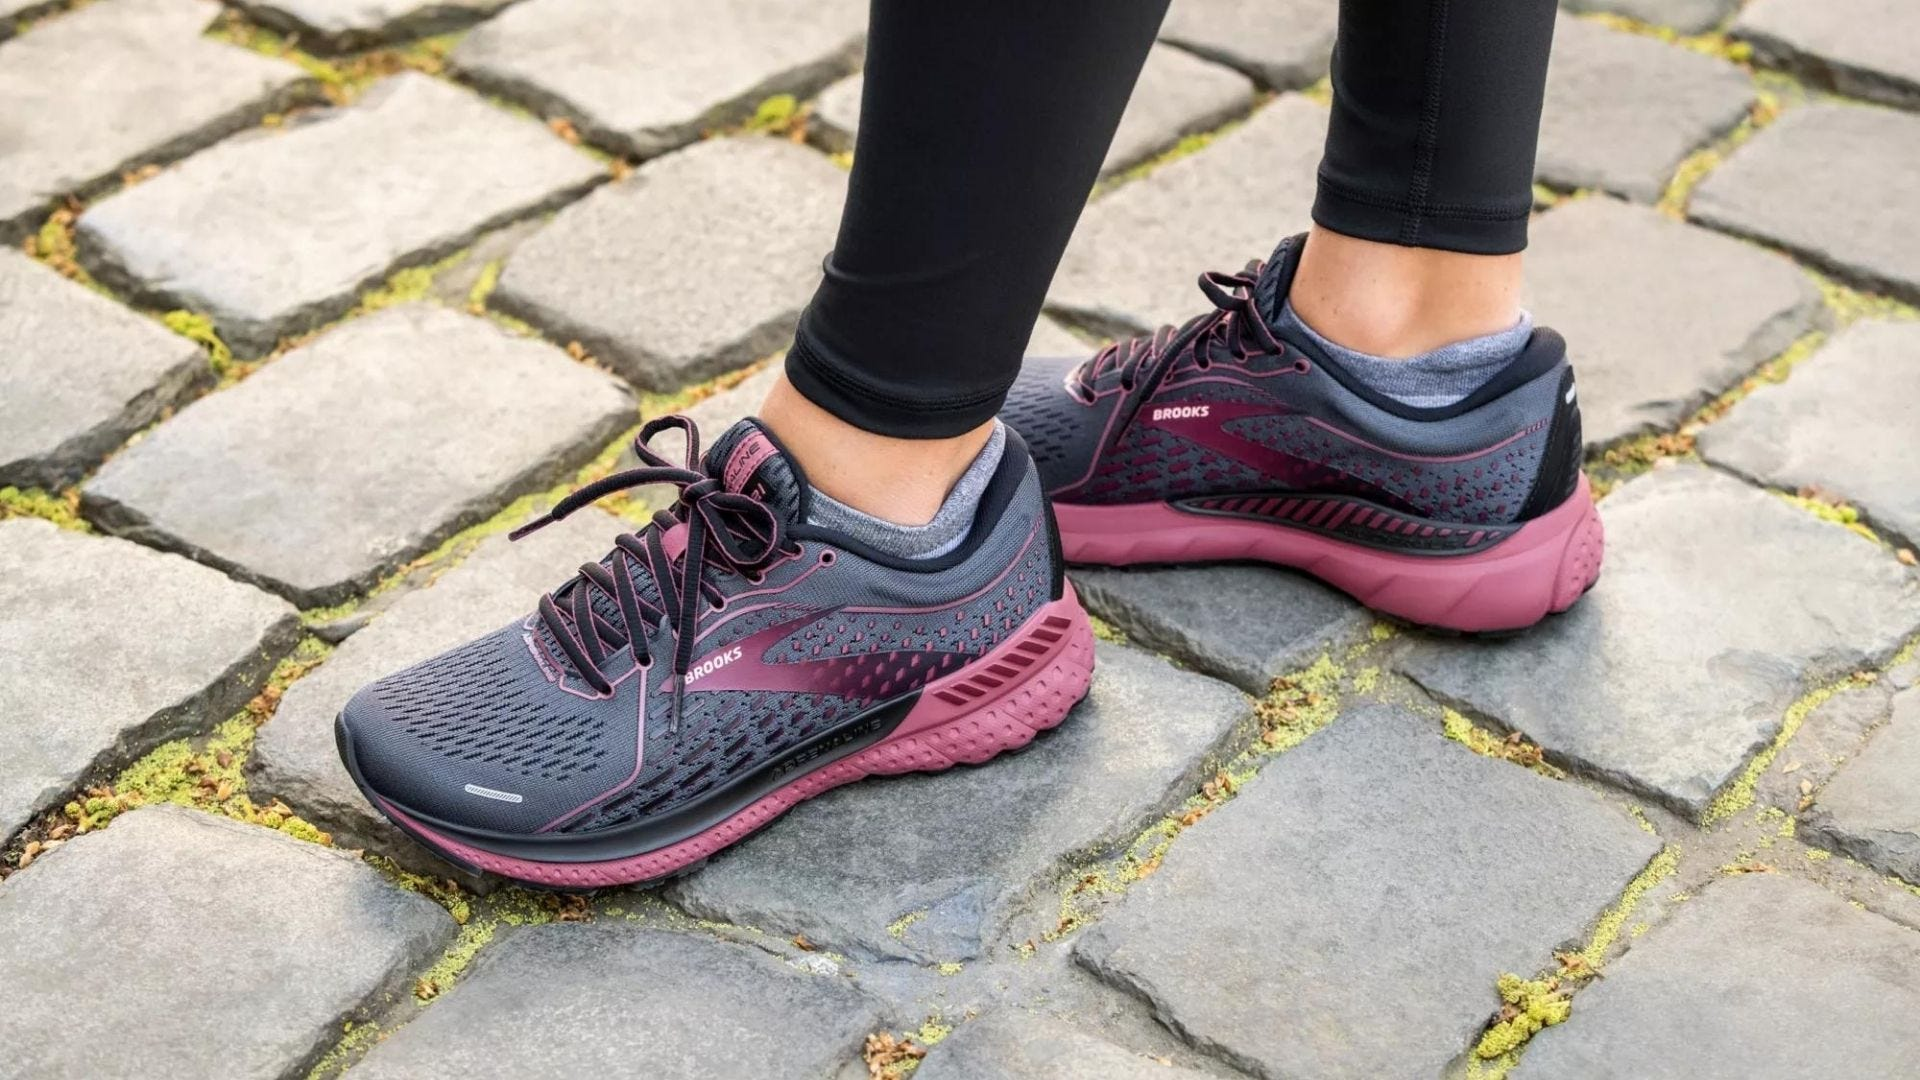 Someone wears a pair of black and pink running shoes